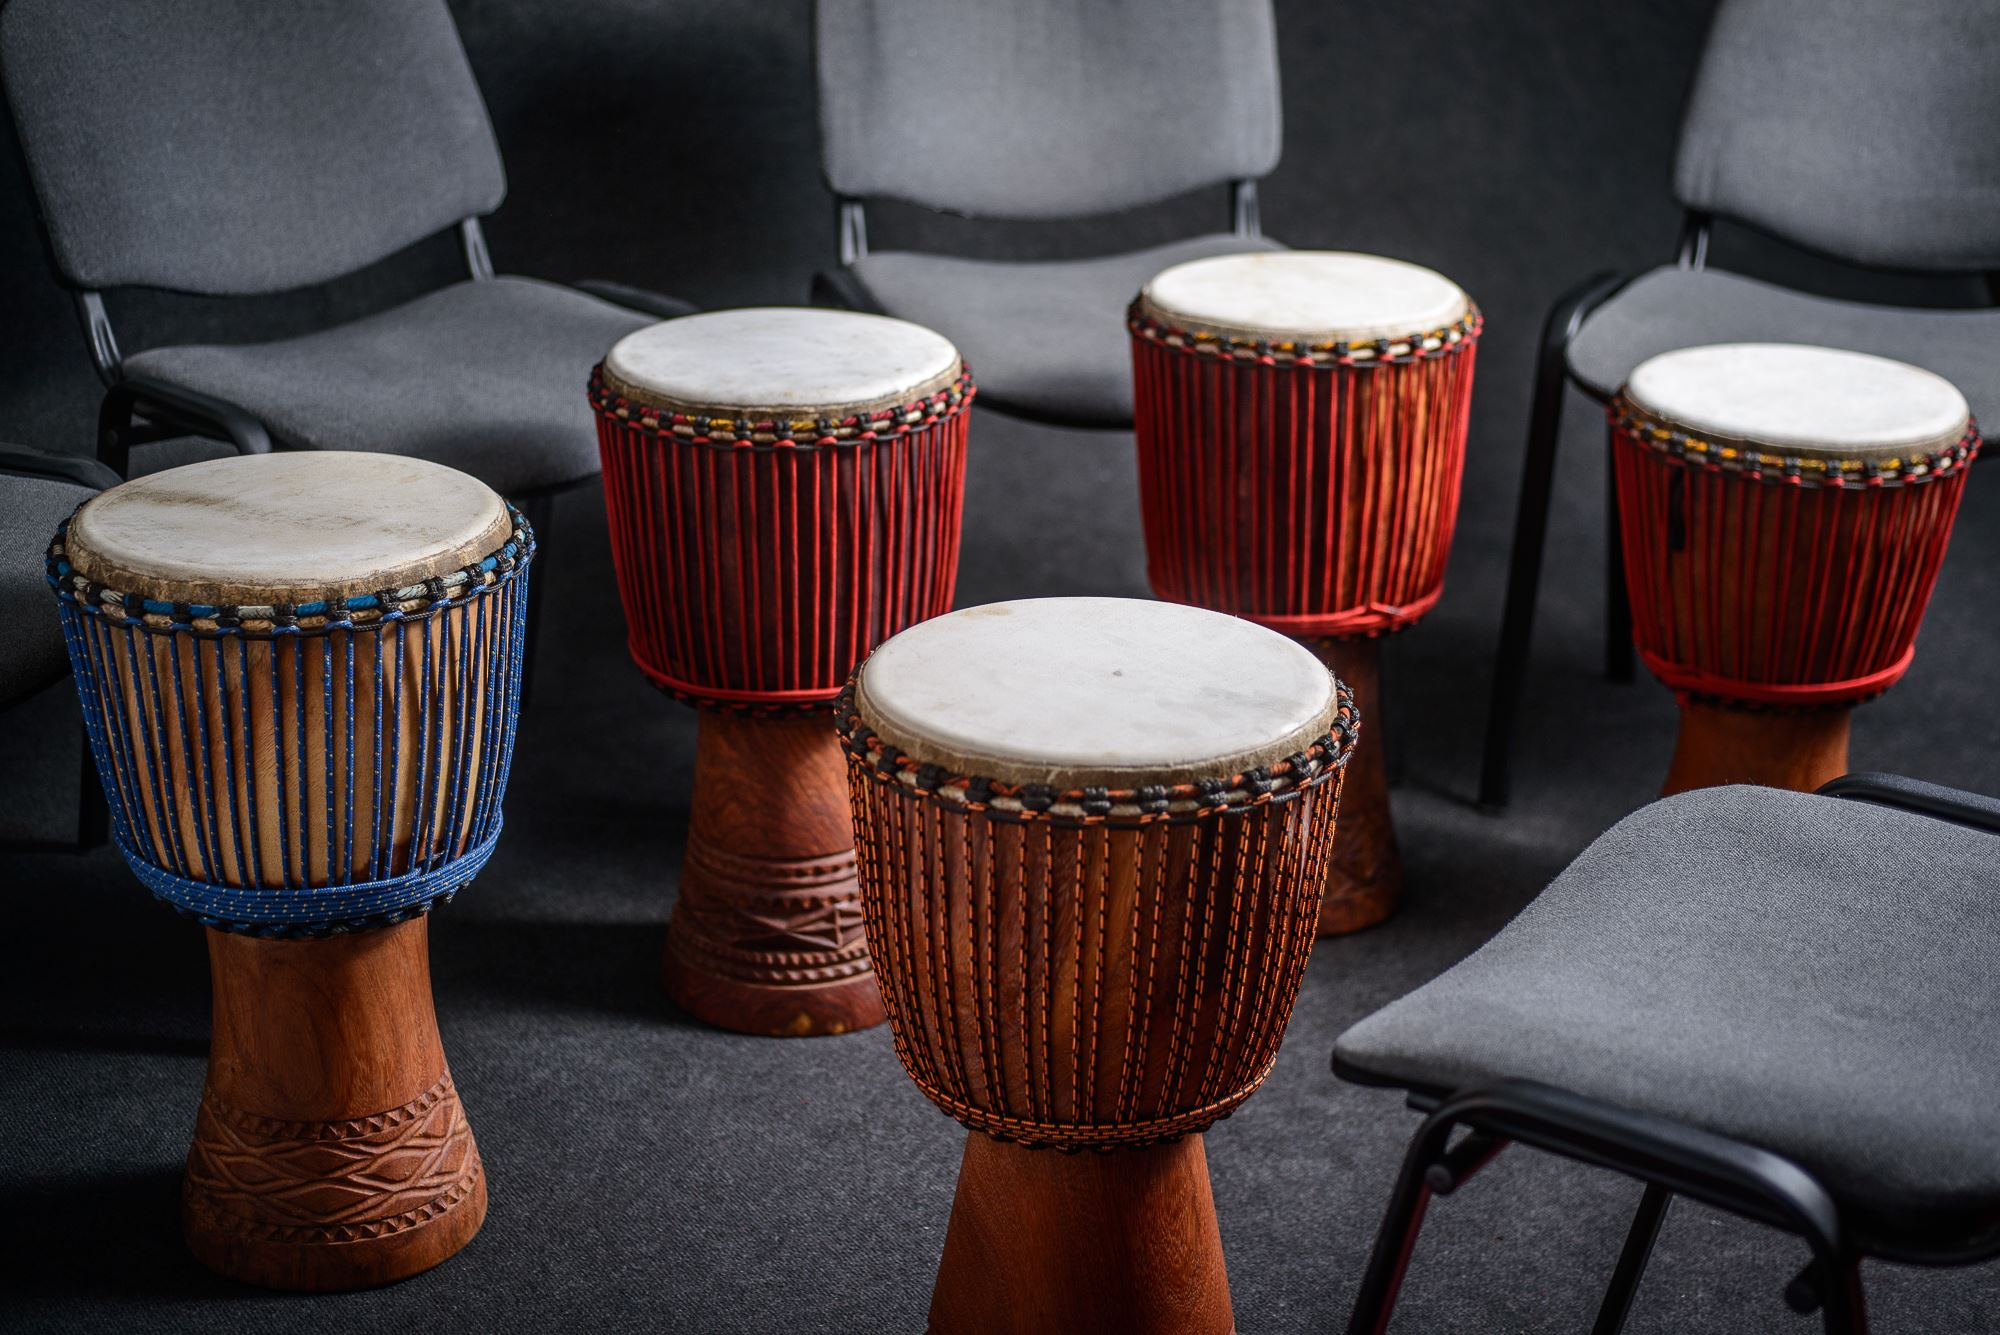 School drumming